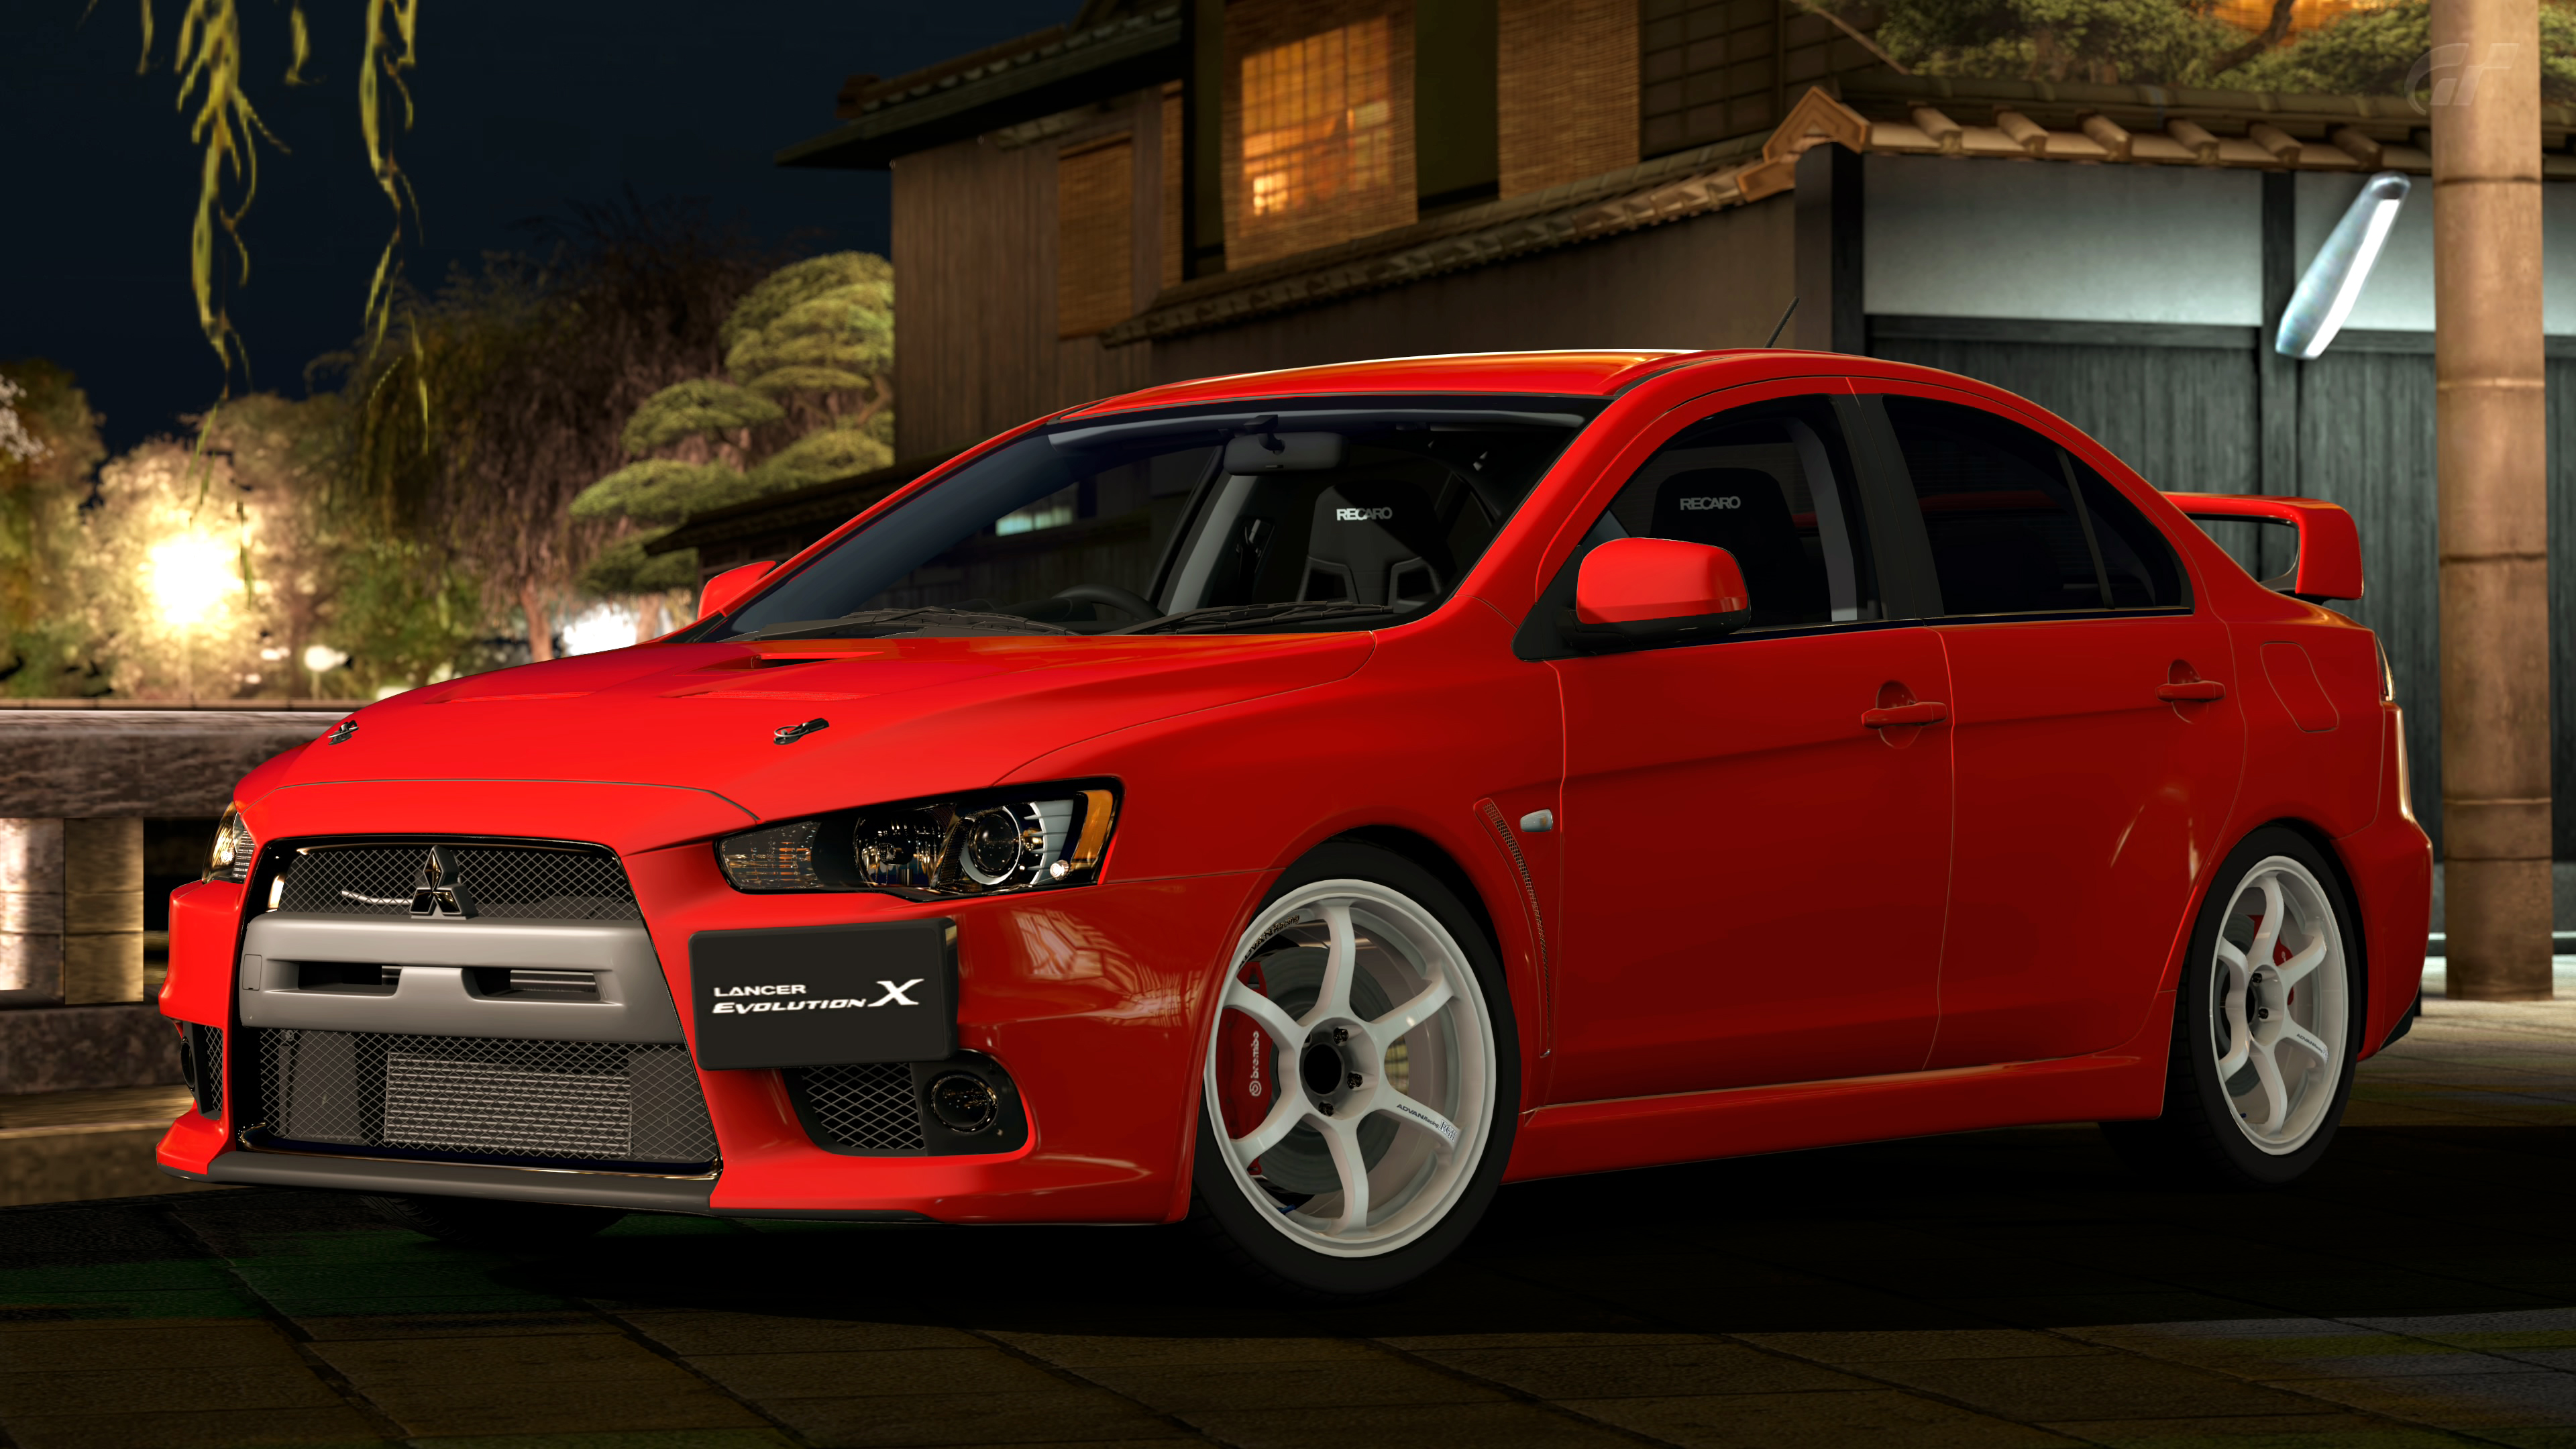 2007 mitsubishi lancer evolution x gt5 by vertualissimo on deviantart. Black Bedroom Furniture Sets. Home Design Ideas